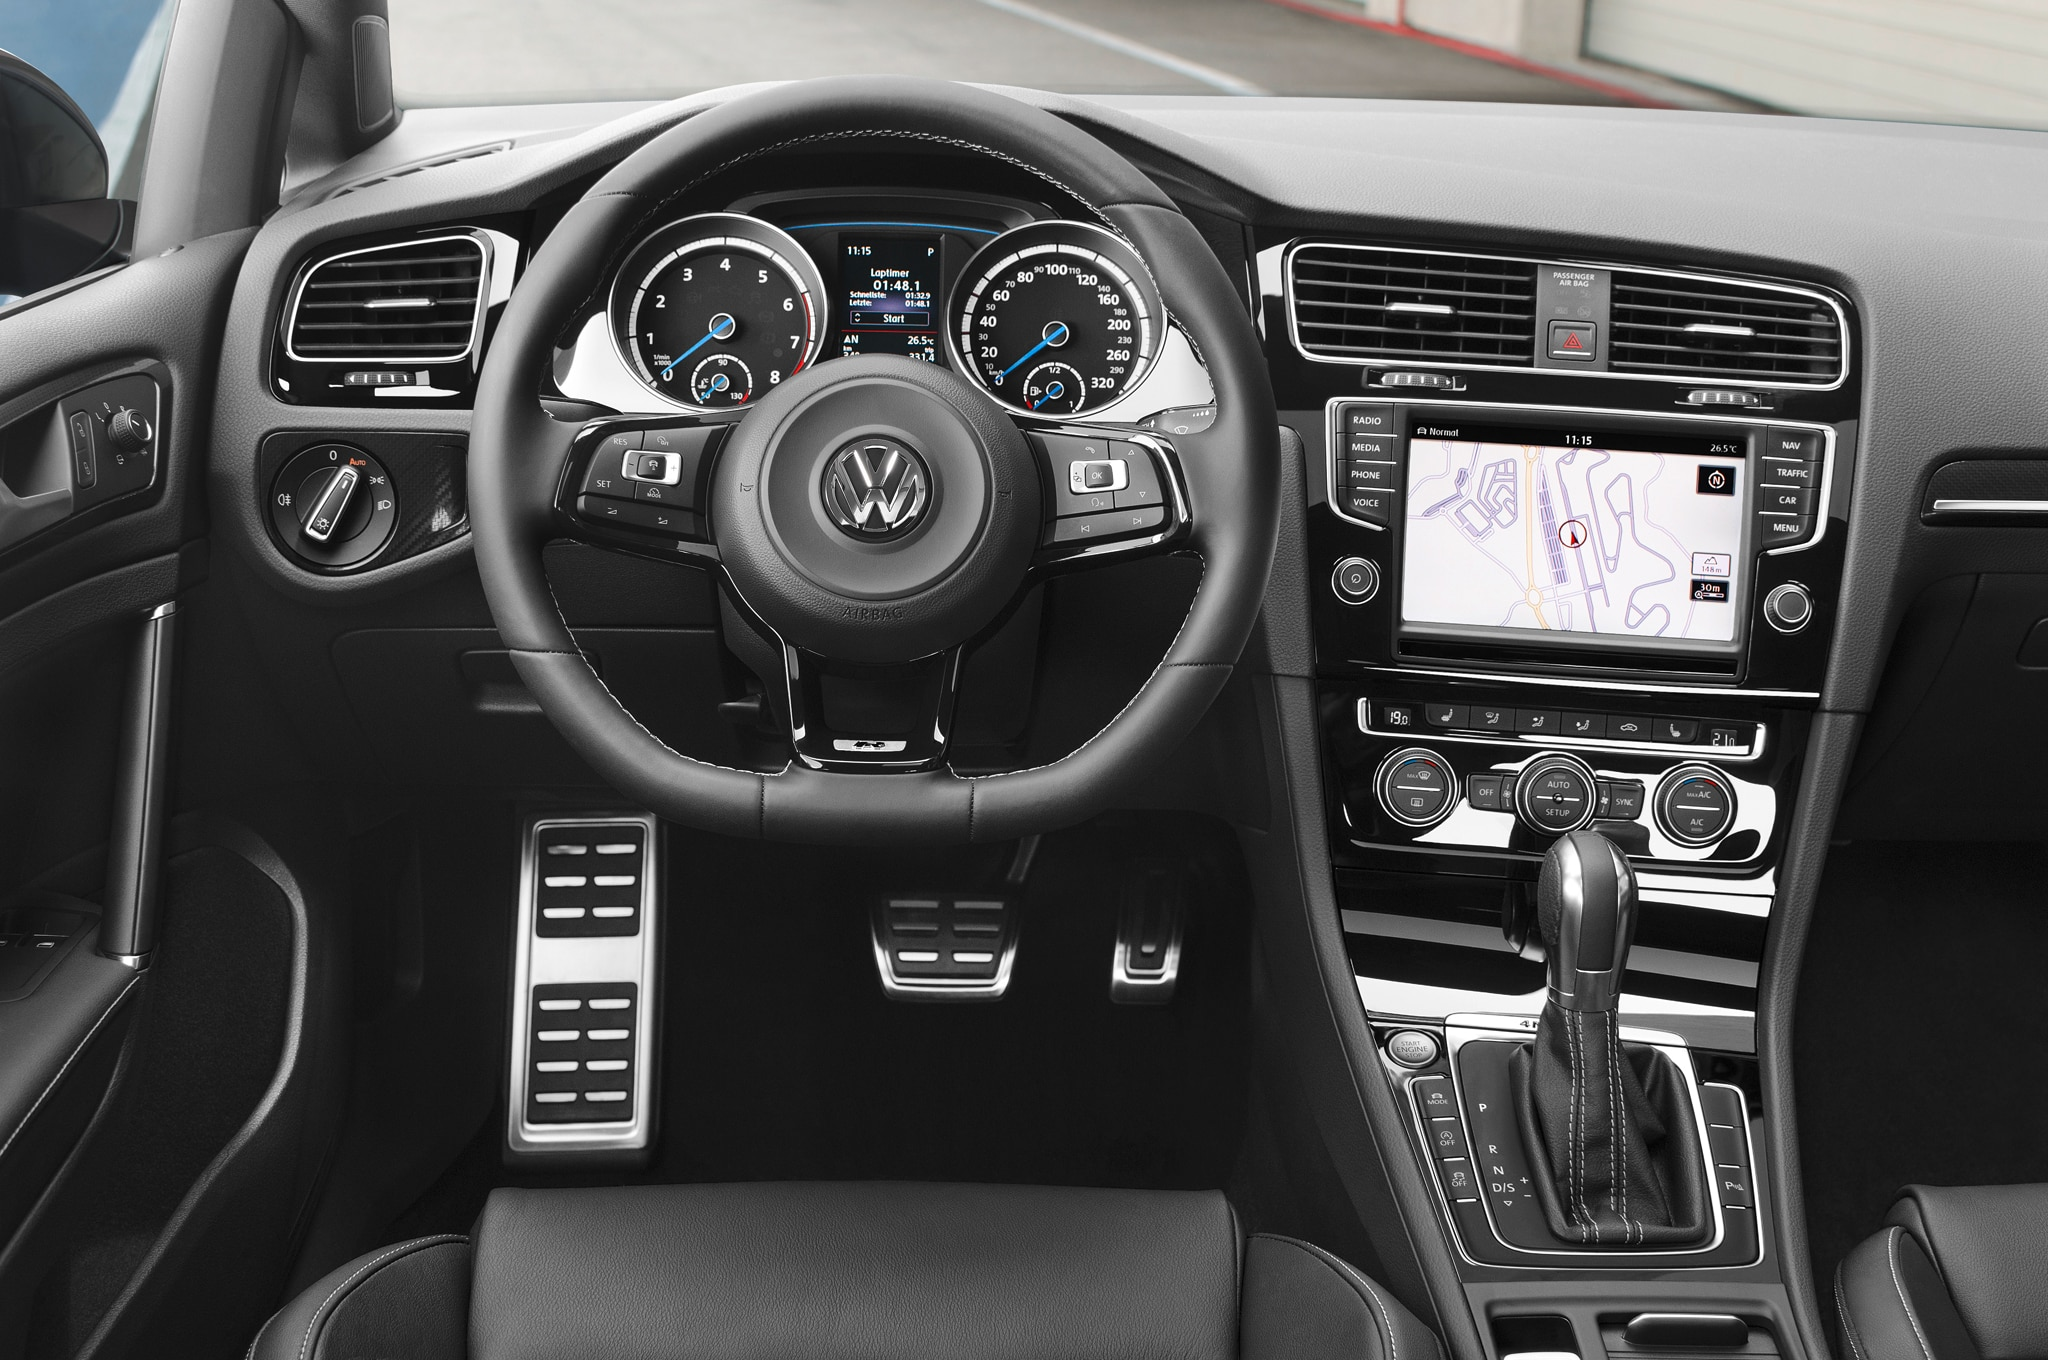 Auto cockpit vw  2015 Volkswagen Golf R Review - Automobile Magazine